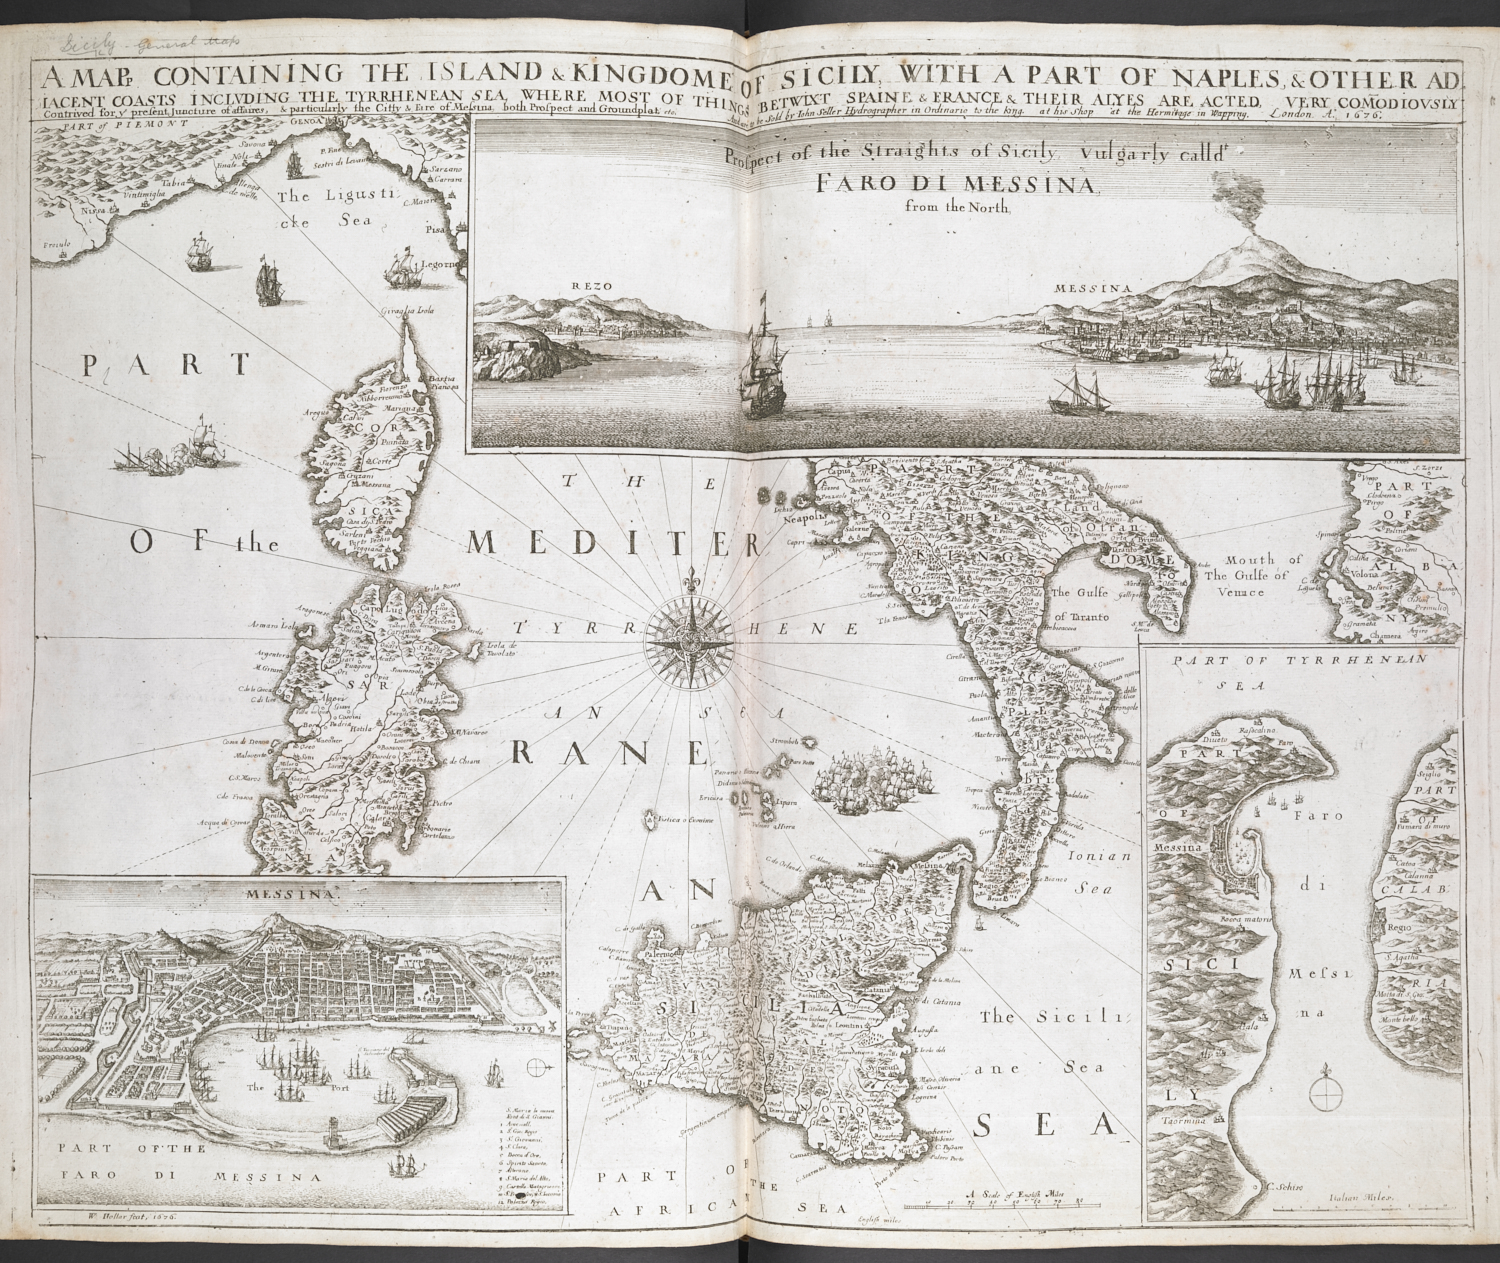 Wenceslaus Hollar's map of Sicily [1680]